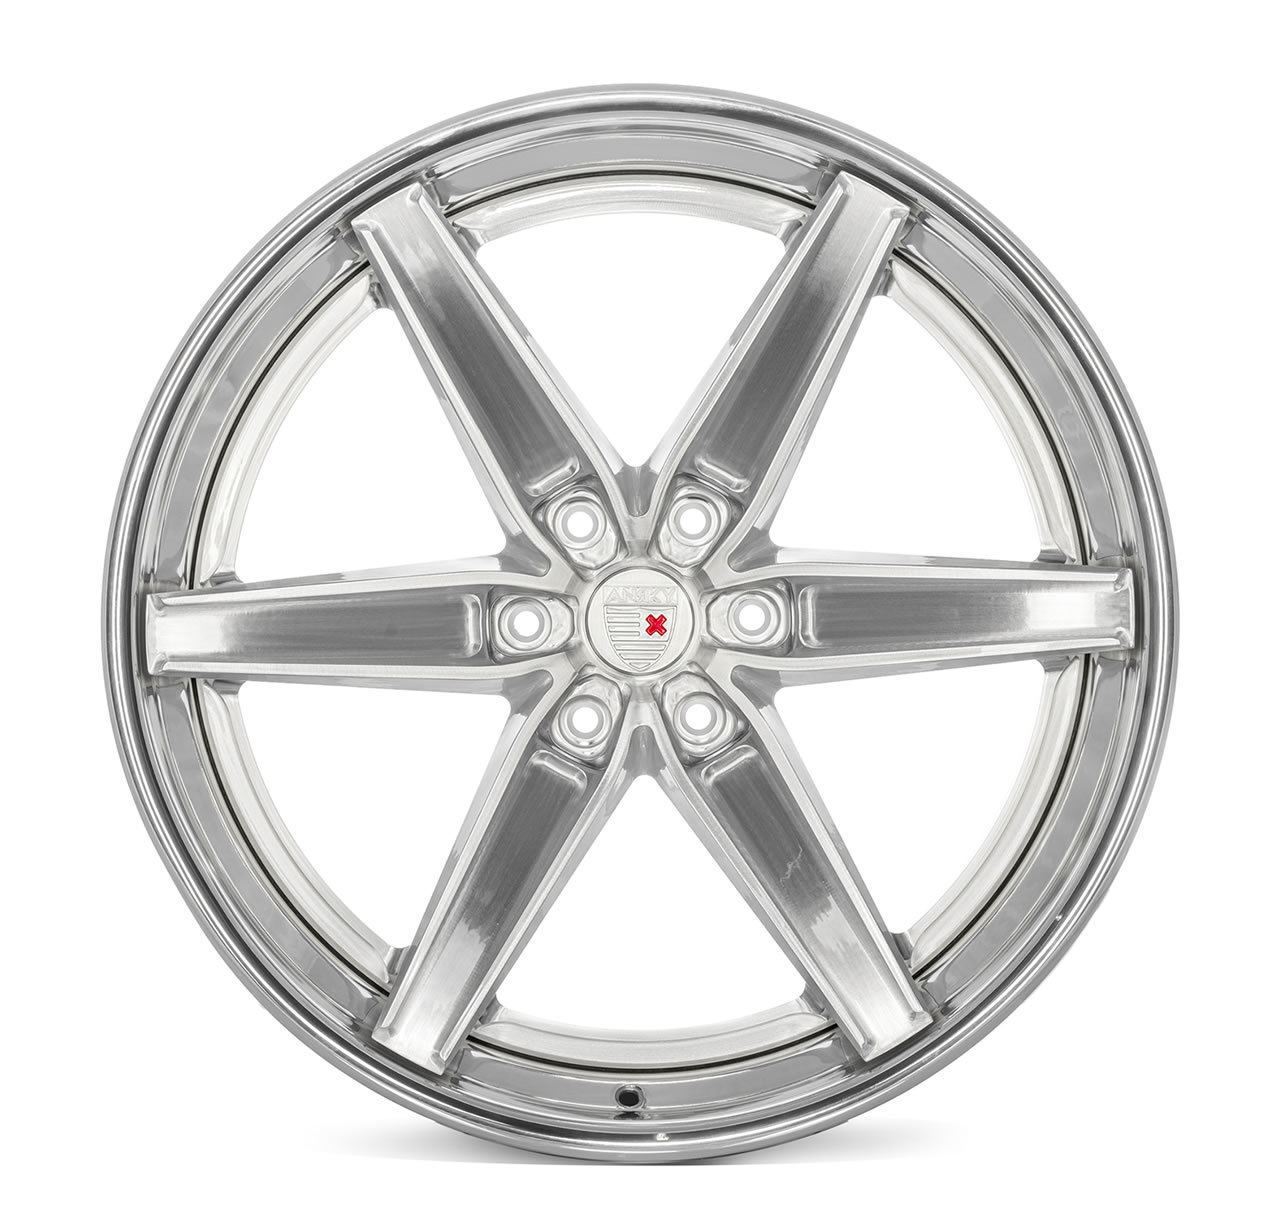 Anrky AN36-S forged wheels